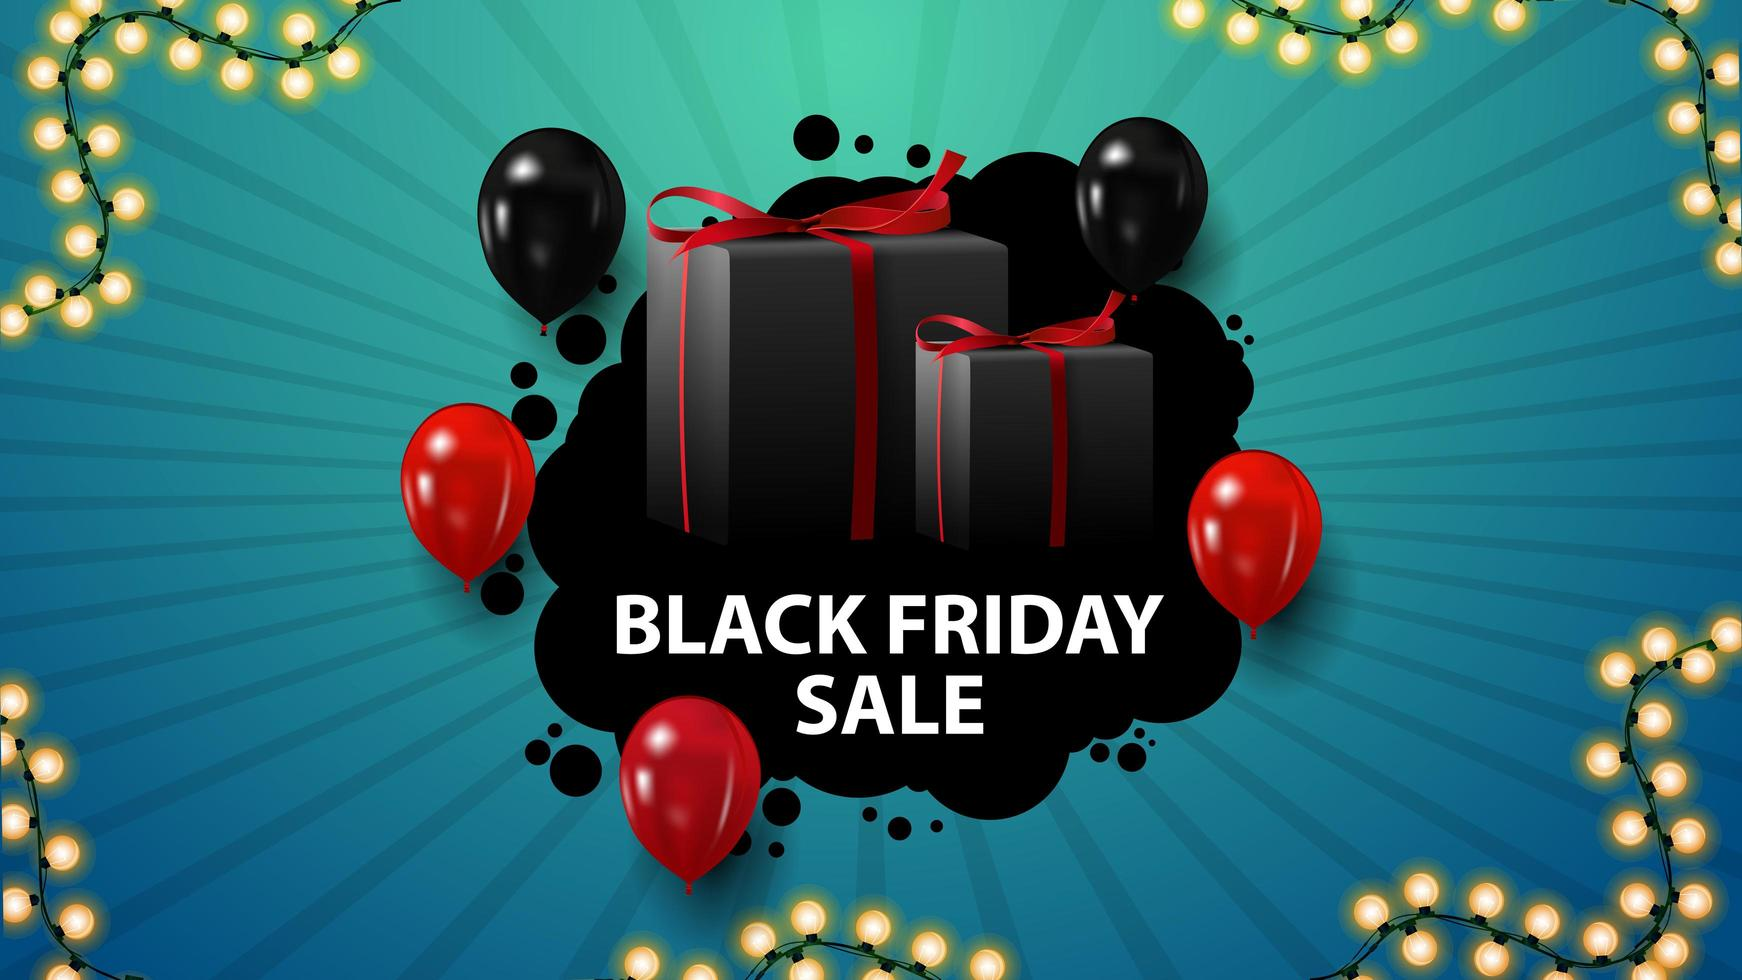 Black Friday sale, blue horizontal discount coupon with gifts and balloons vector